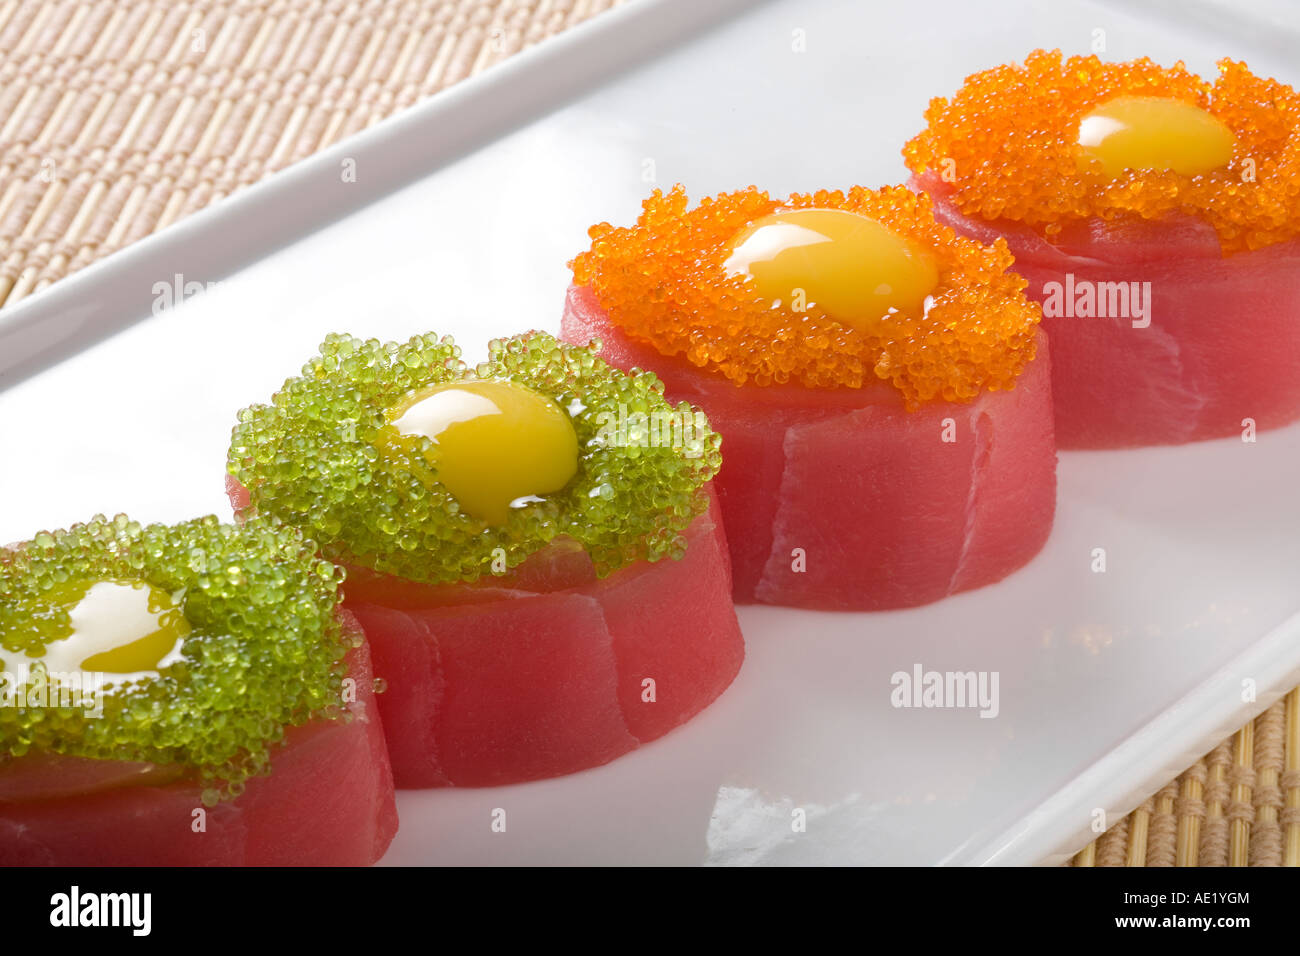 A Japanese dish on a plate consisting of 4 pieces of sushi. Stock Photo